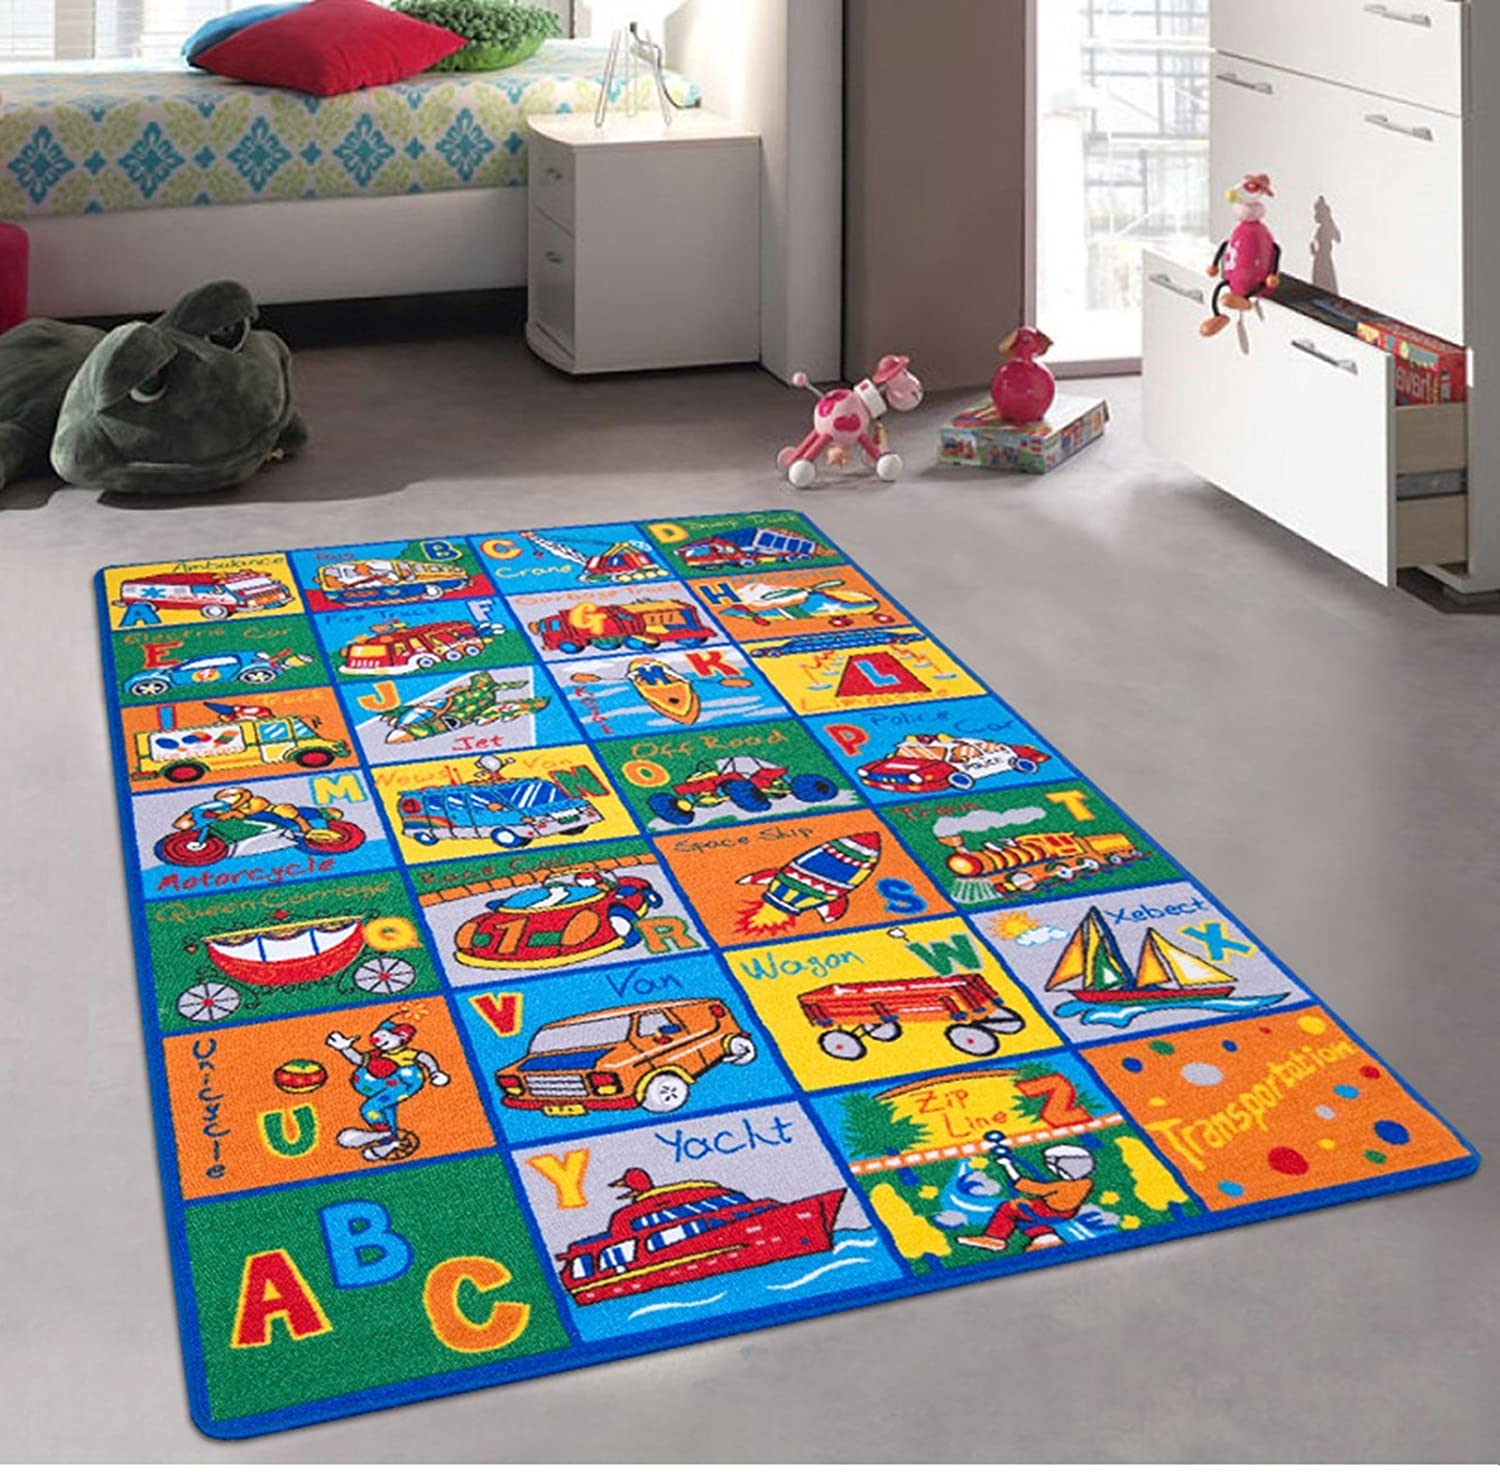 ABC Transportation - Children's Area Rug Kids Nursery Carpet Play Mat